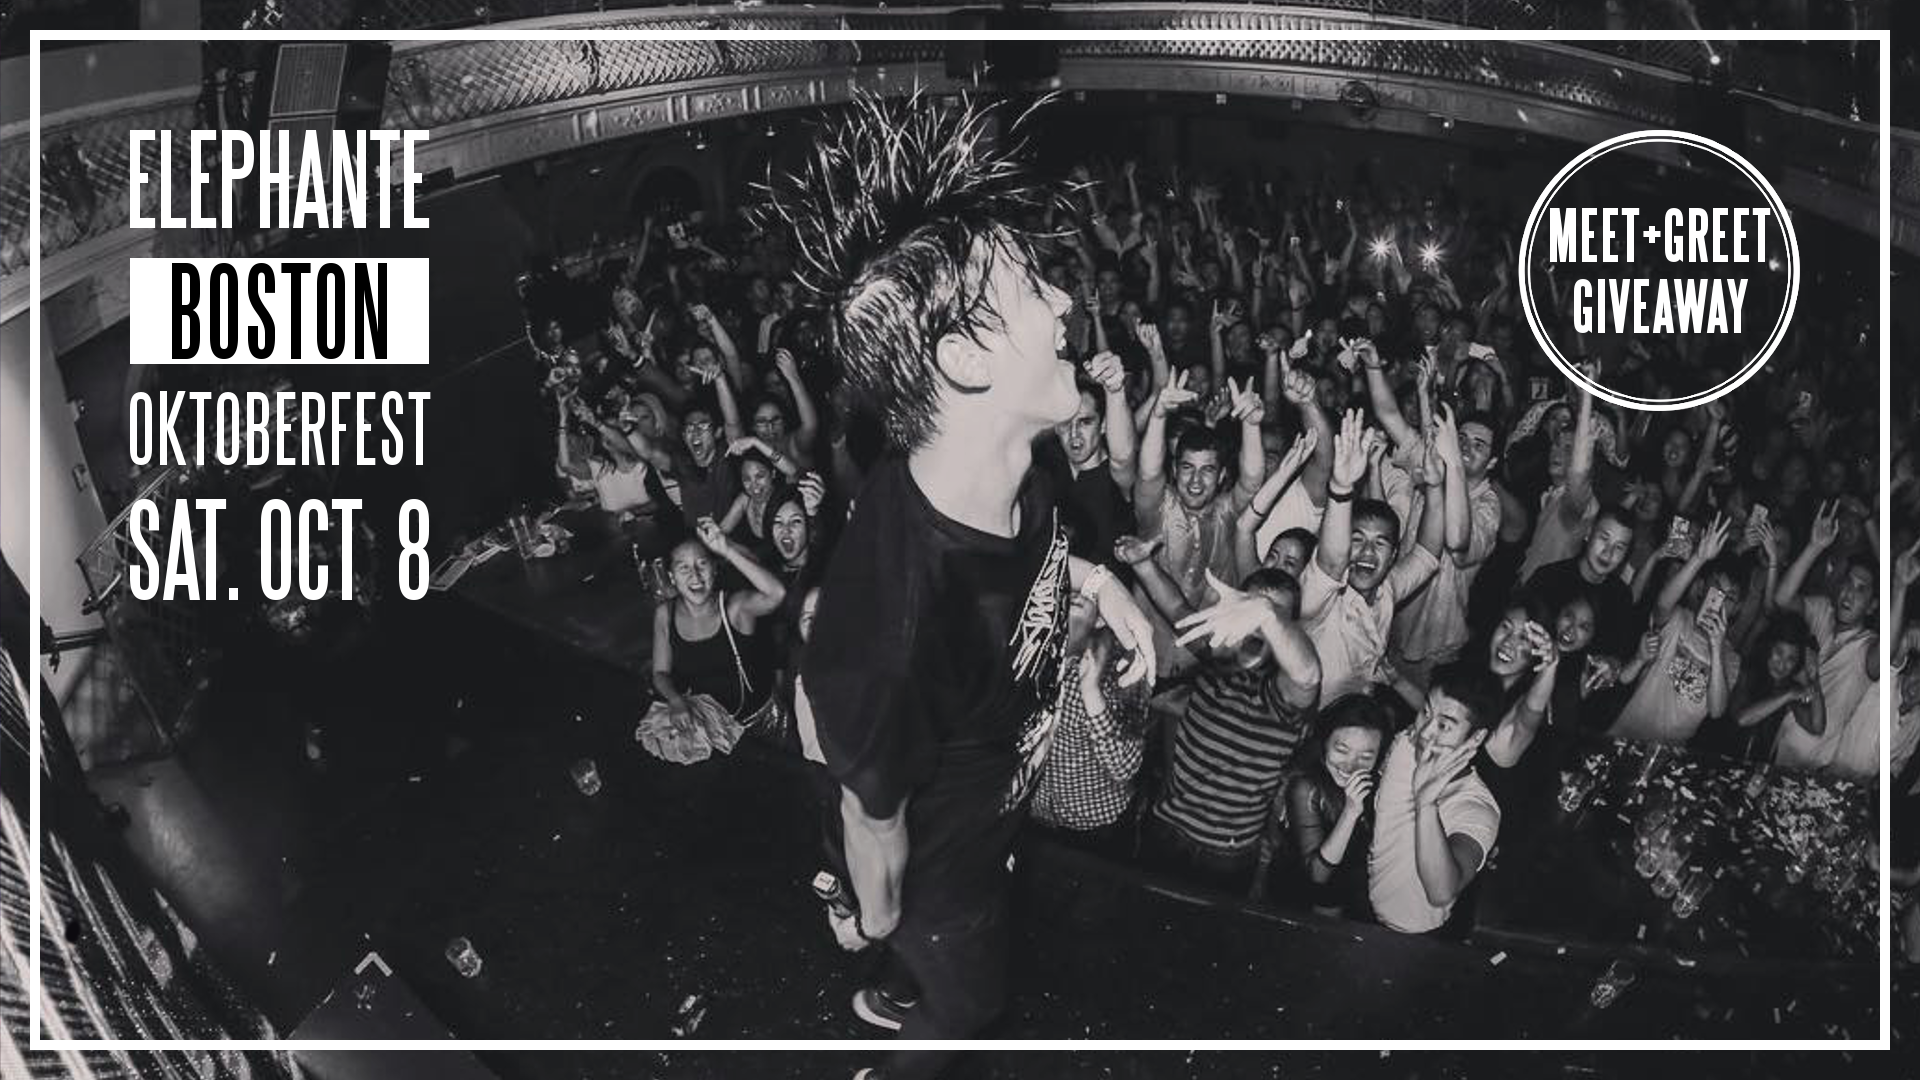 Win 2 Tickets And A Meet Greet To Elephantes Boston Show Enter